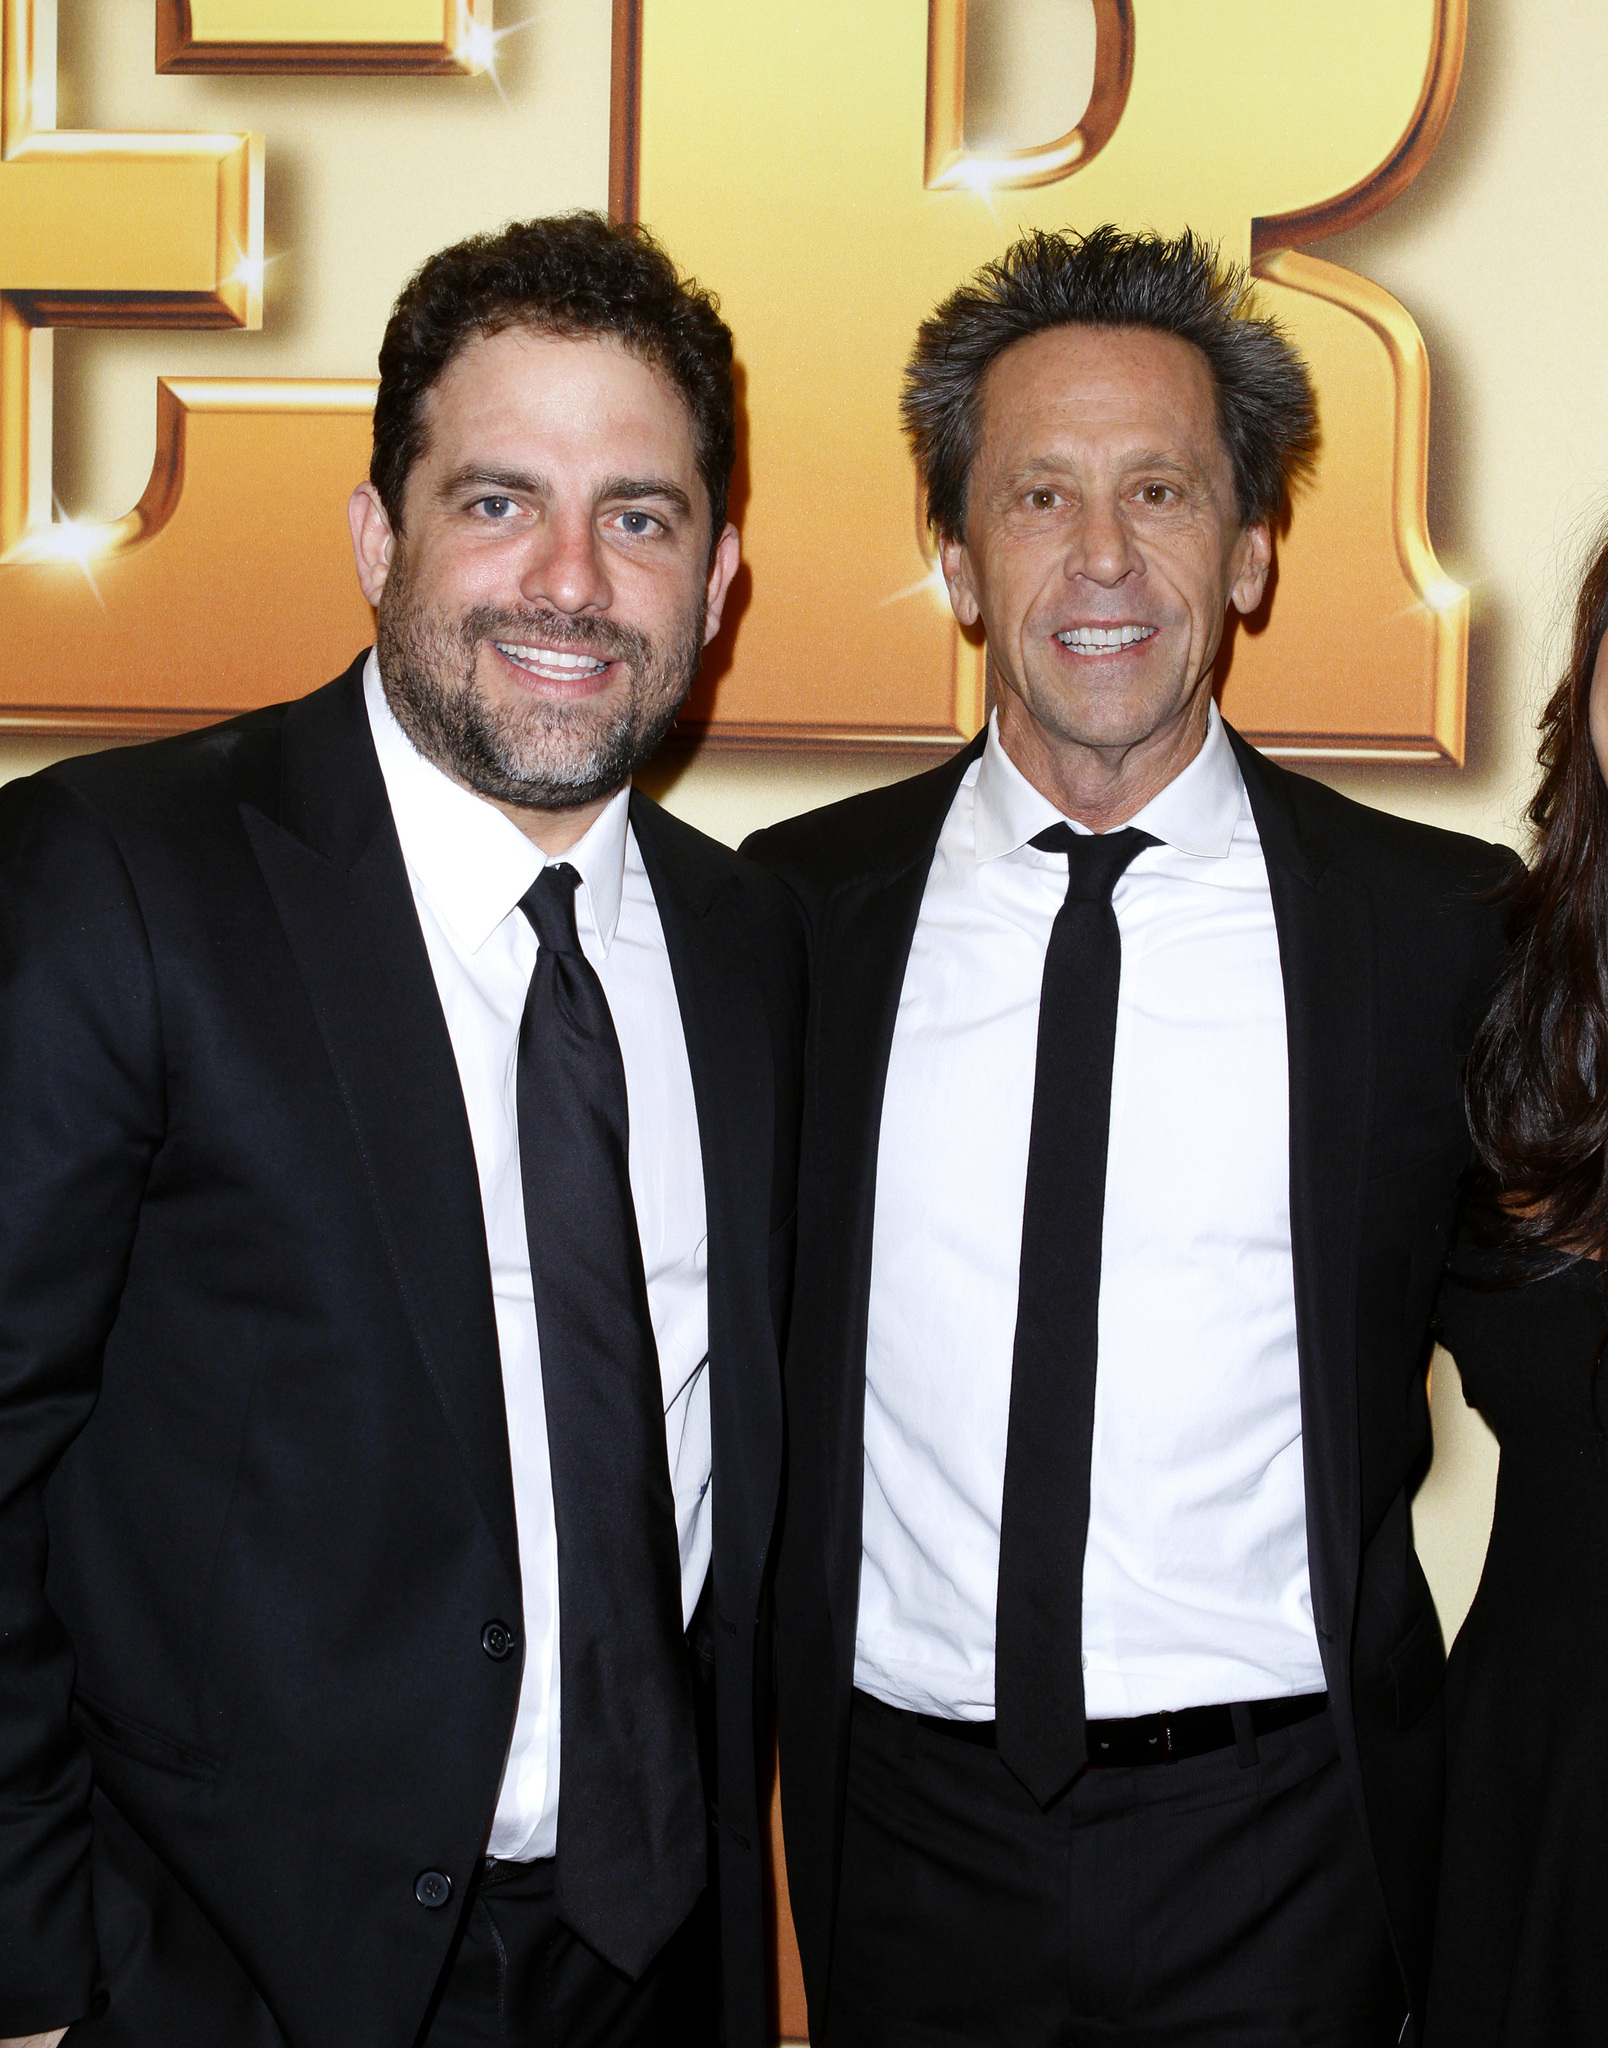 Brian Grazer and Brett Ratner at an event for Tower Heist (2011)